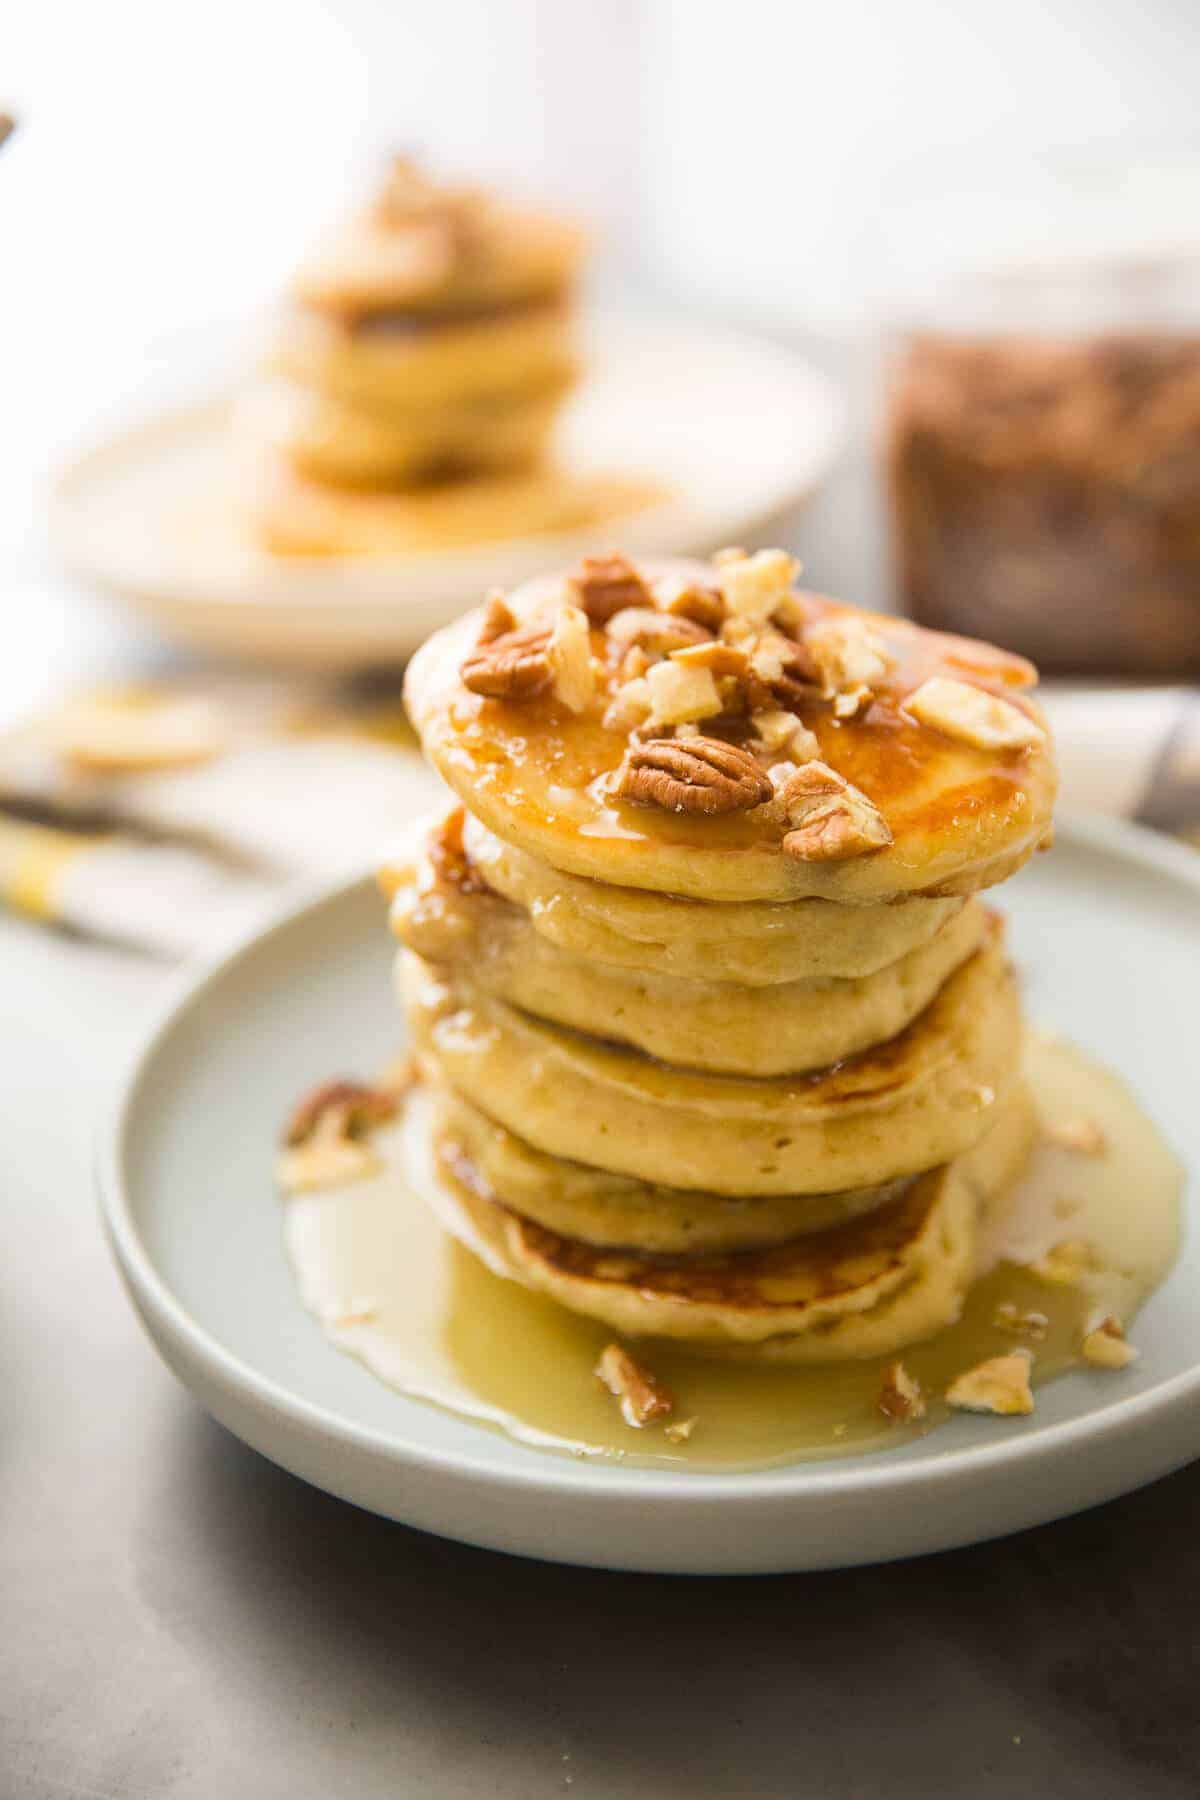 Frugal Foodie Mama: 20 Fun & Tasty Pancake Recipes